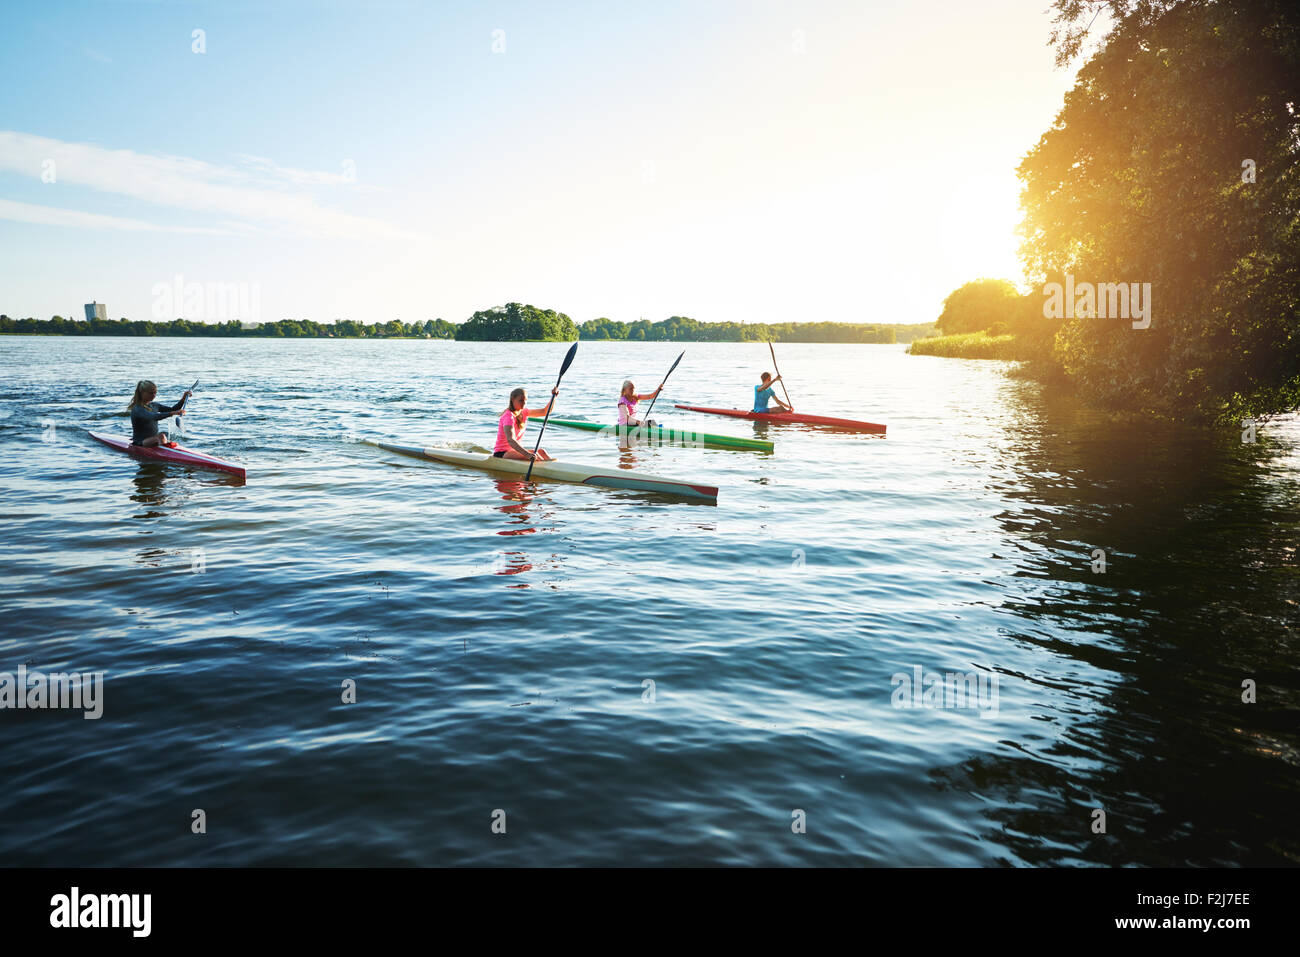 Team of sports kayaks racing on the lake - Stock Image